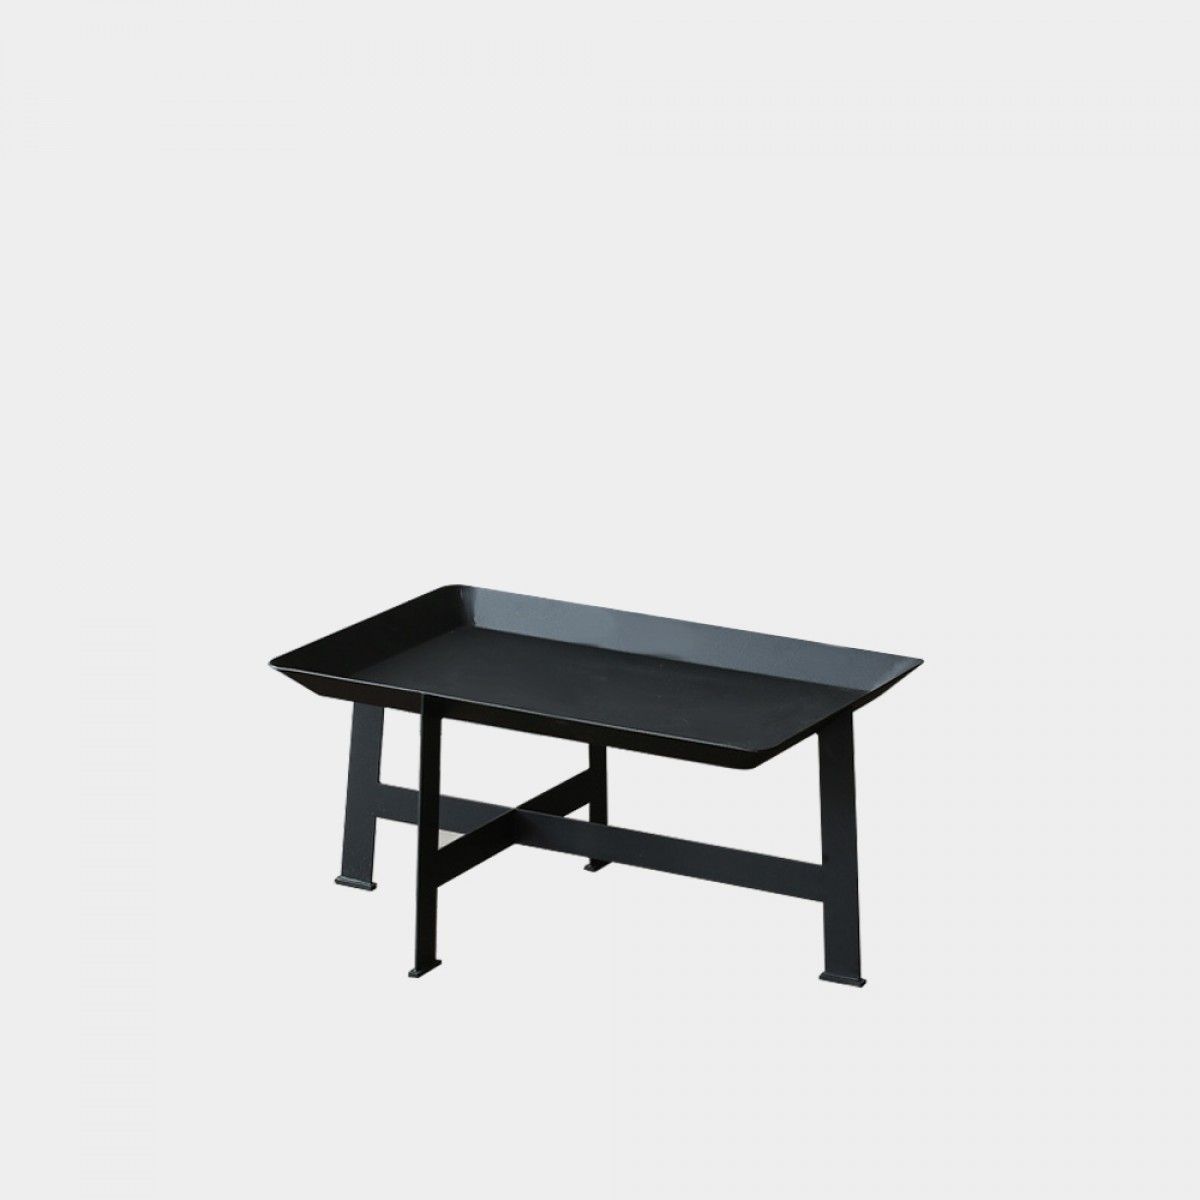 Carbon Coffee Table Designer Jerry Low for JotterGoods